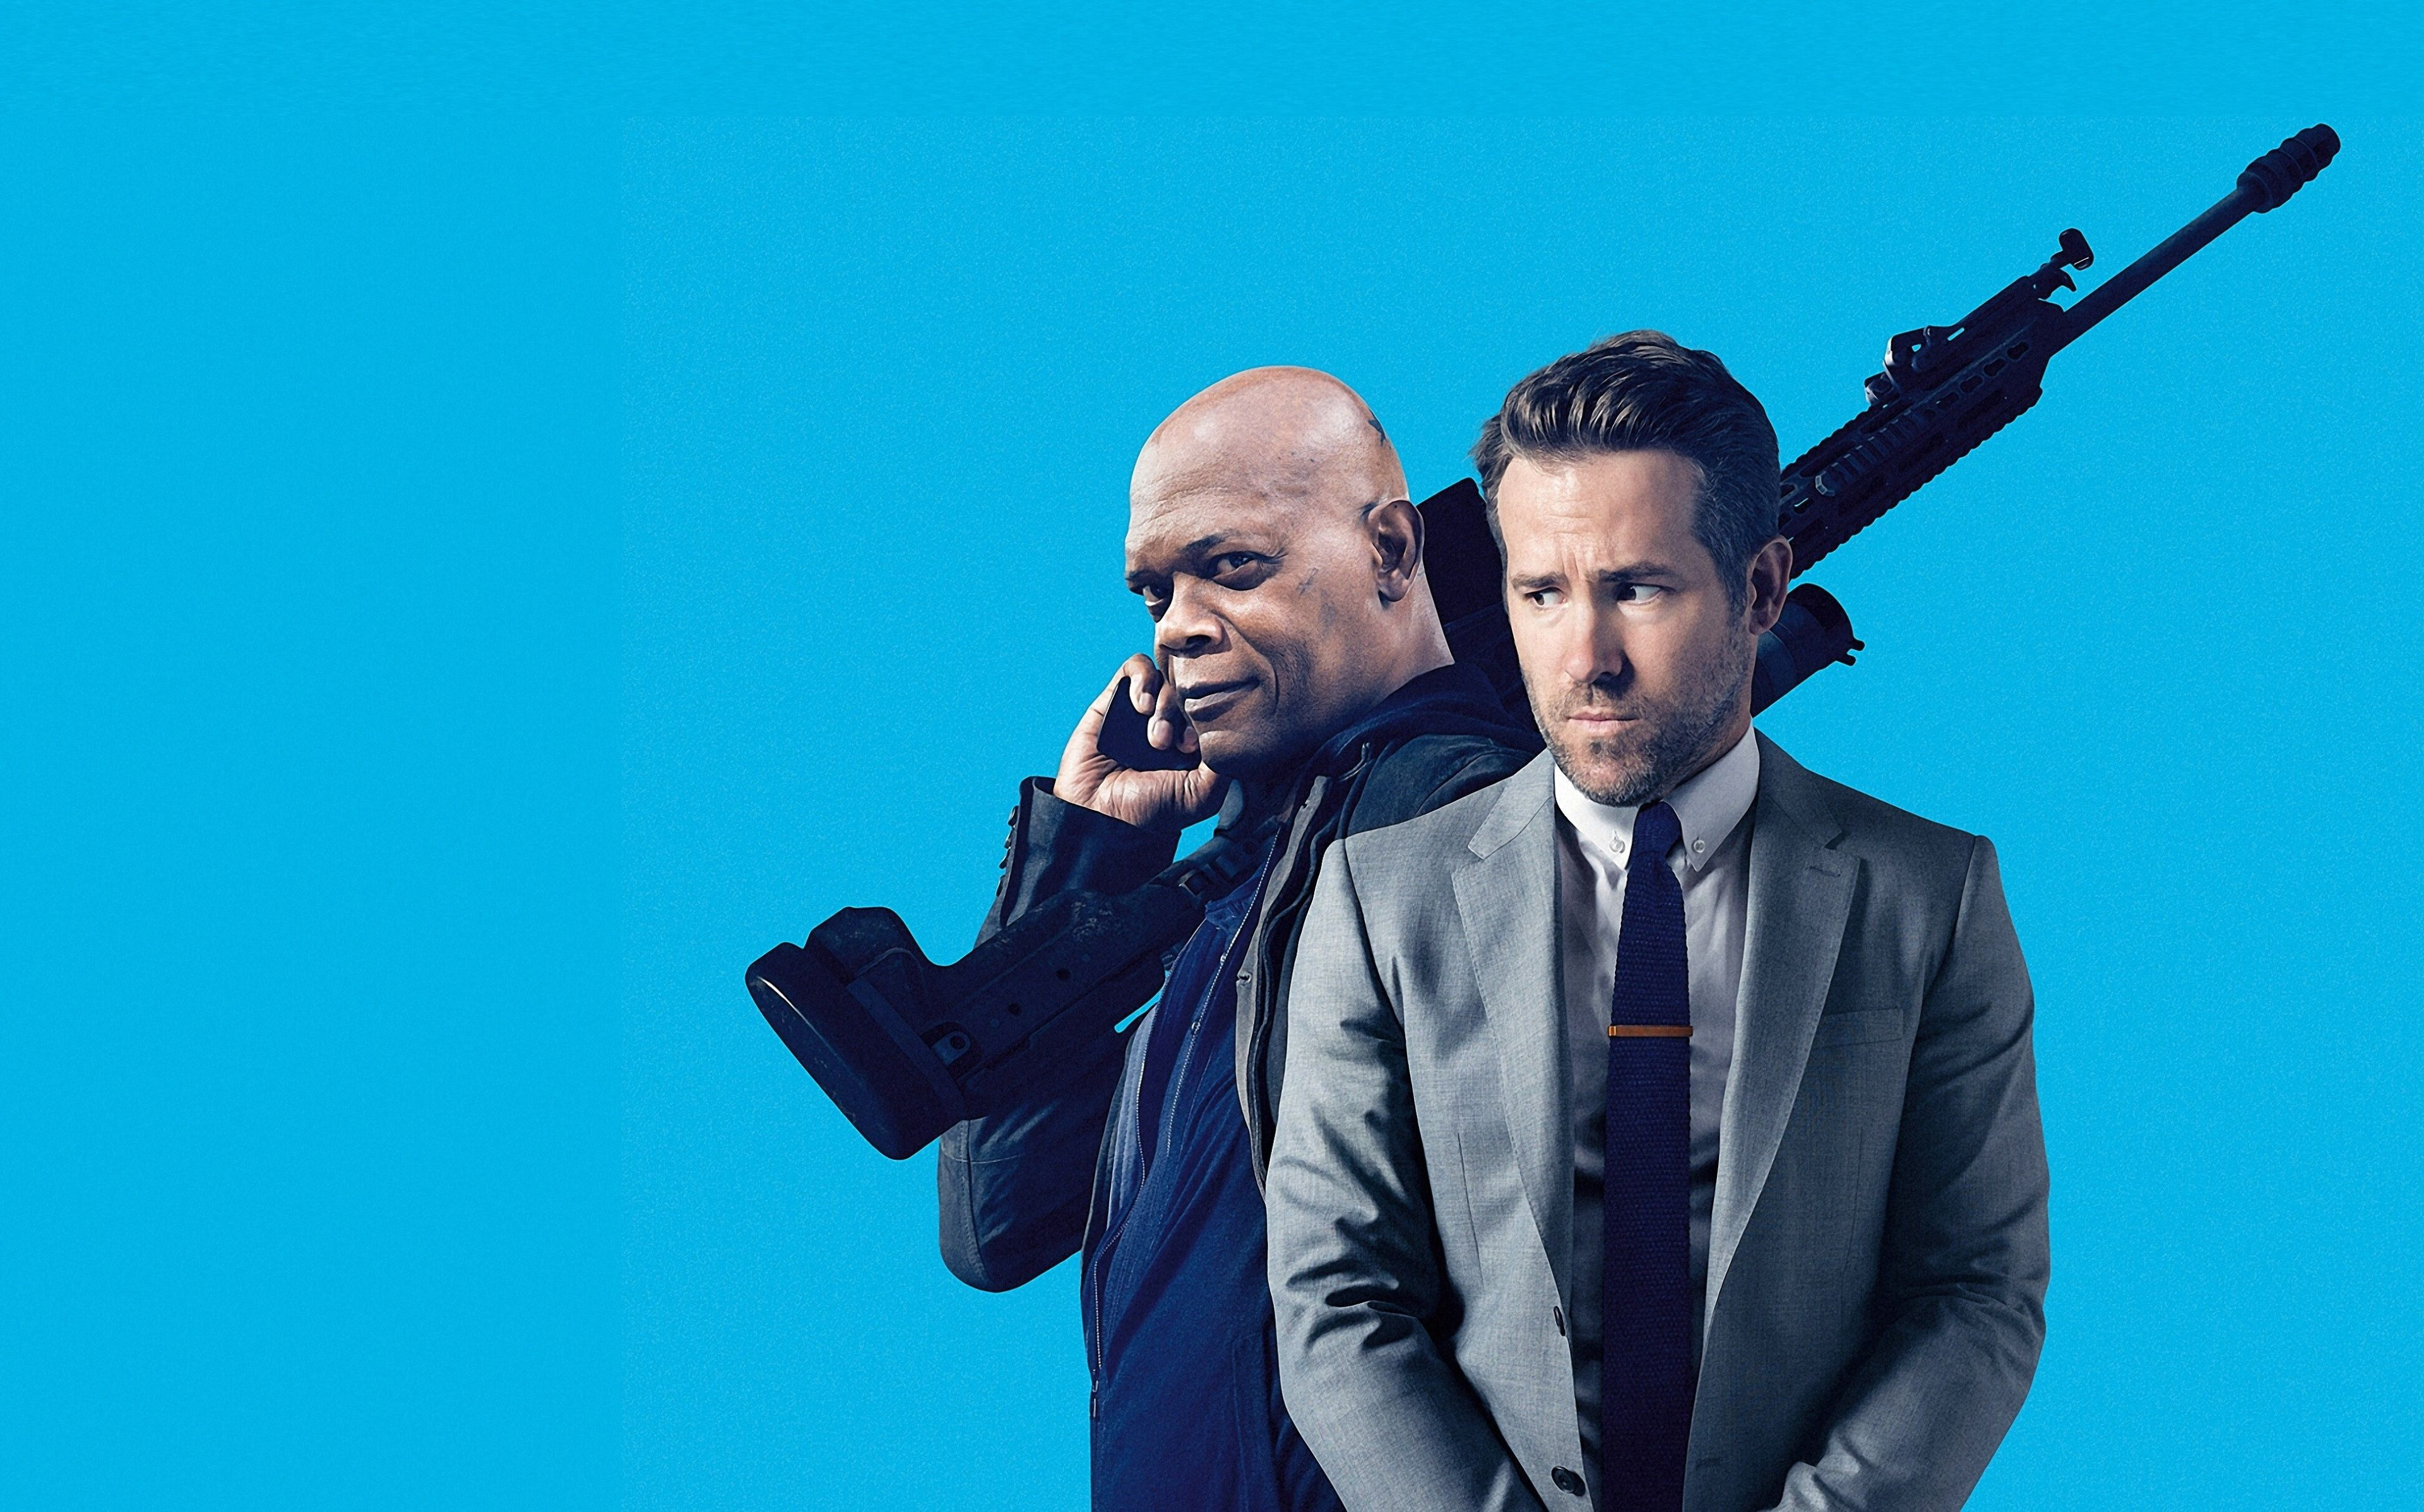 3840x2396 The Hitmans Bodyguard 4k Hd Wallpapers With High